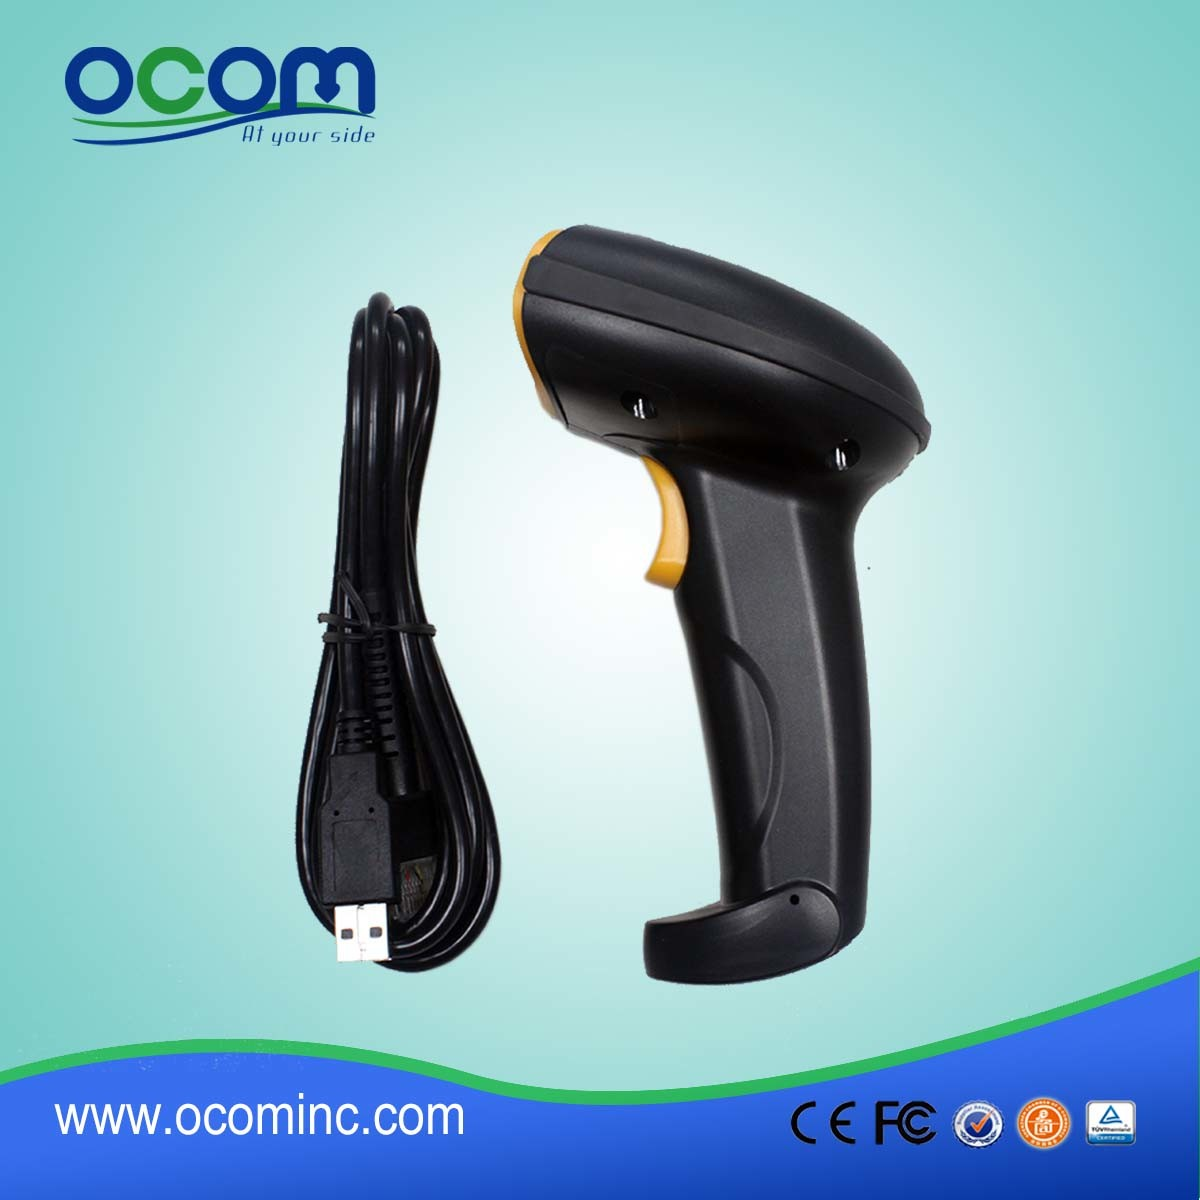 Ocbs-2010: Cheap Handheld USB Qr 2D Barcode Scanner pictures & photos